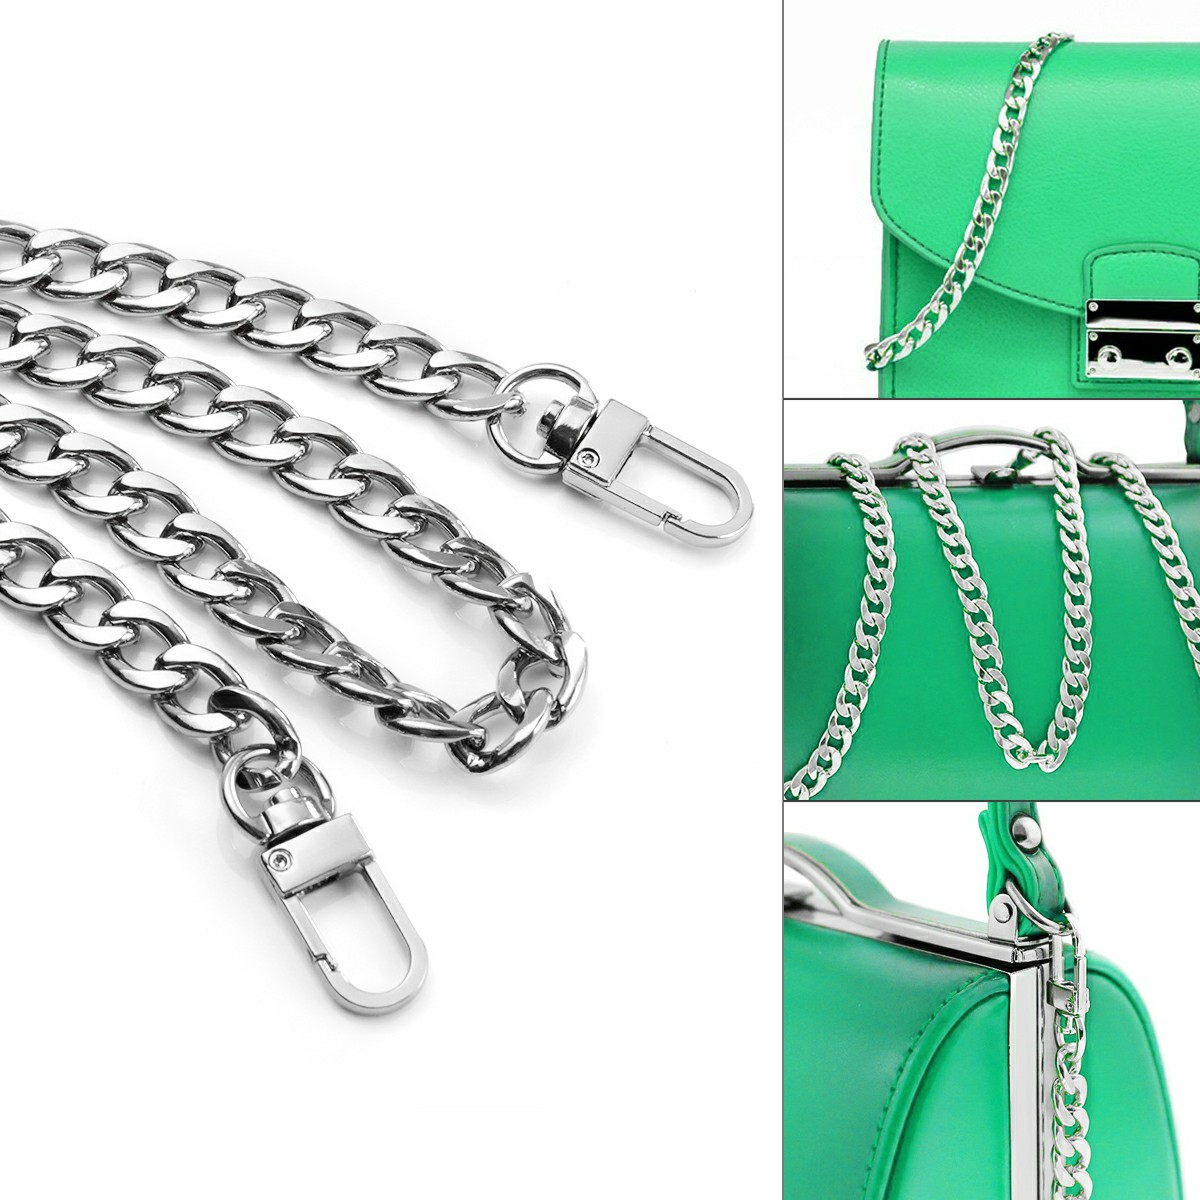 Bag Metal Flat Chain Replacement Strap for Handbag Purse - Silver